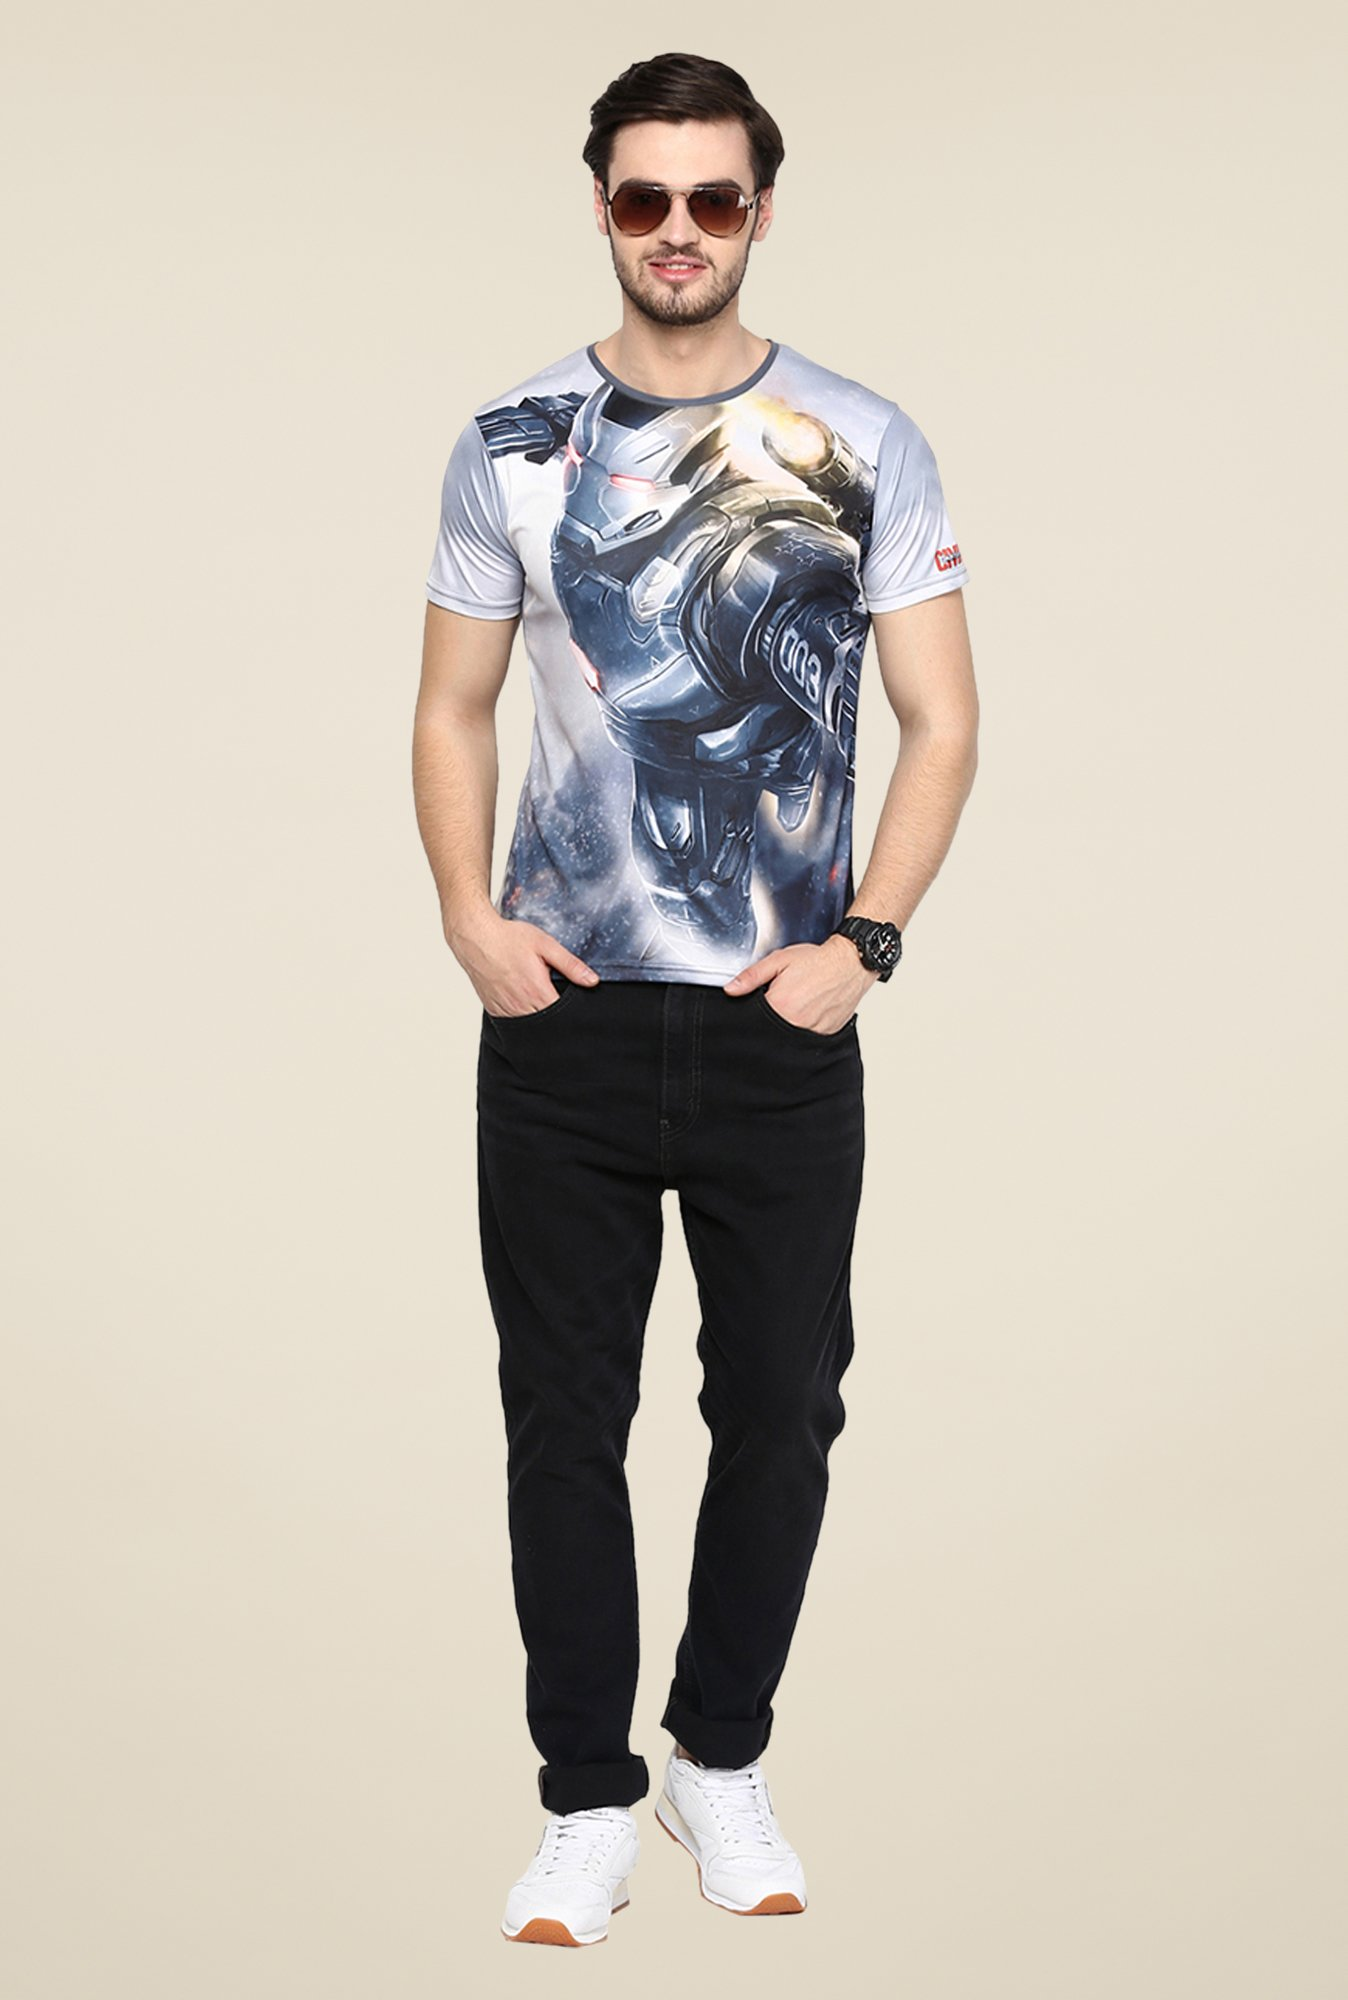 Yepme Grey Civil War Machine Graphic Print T Shirt